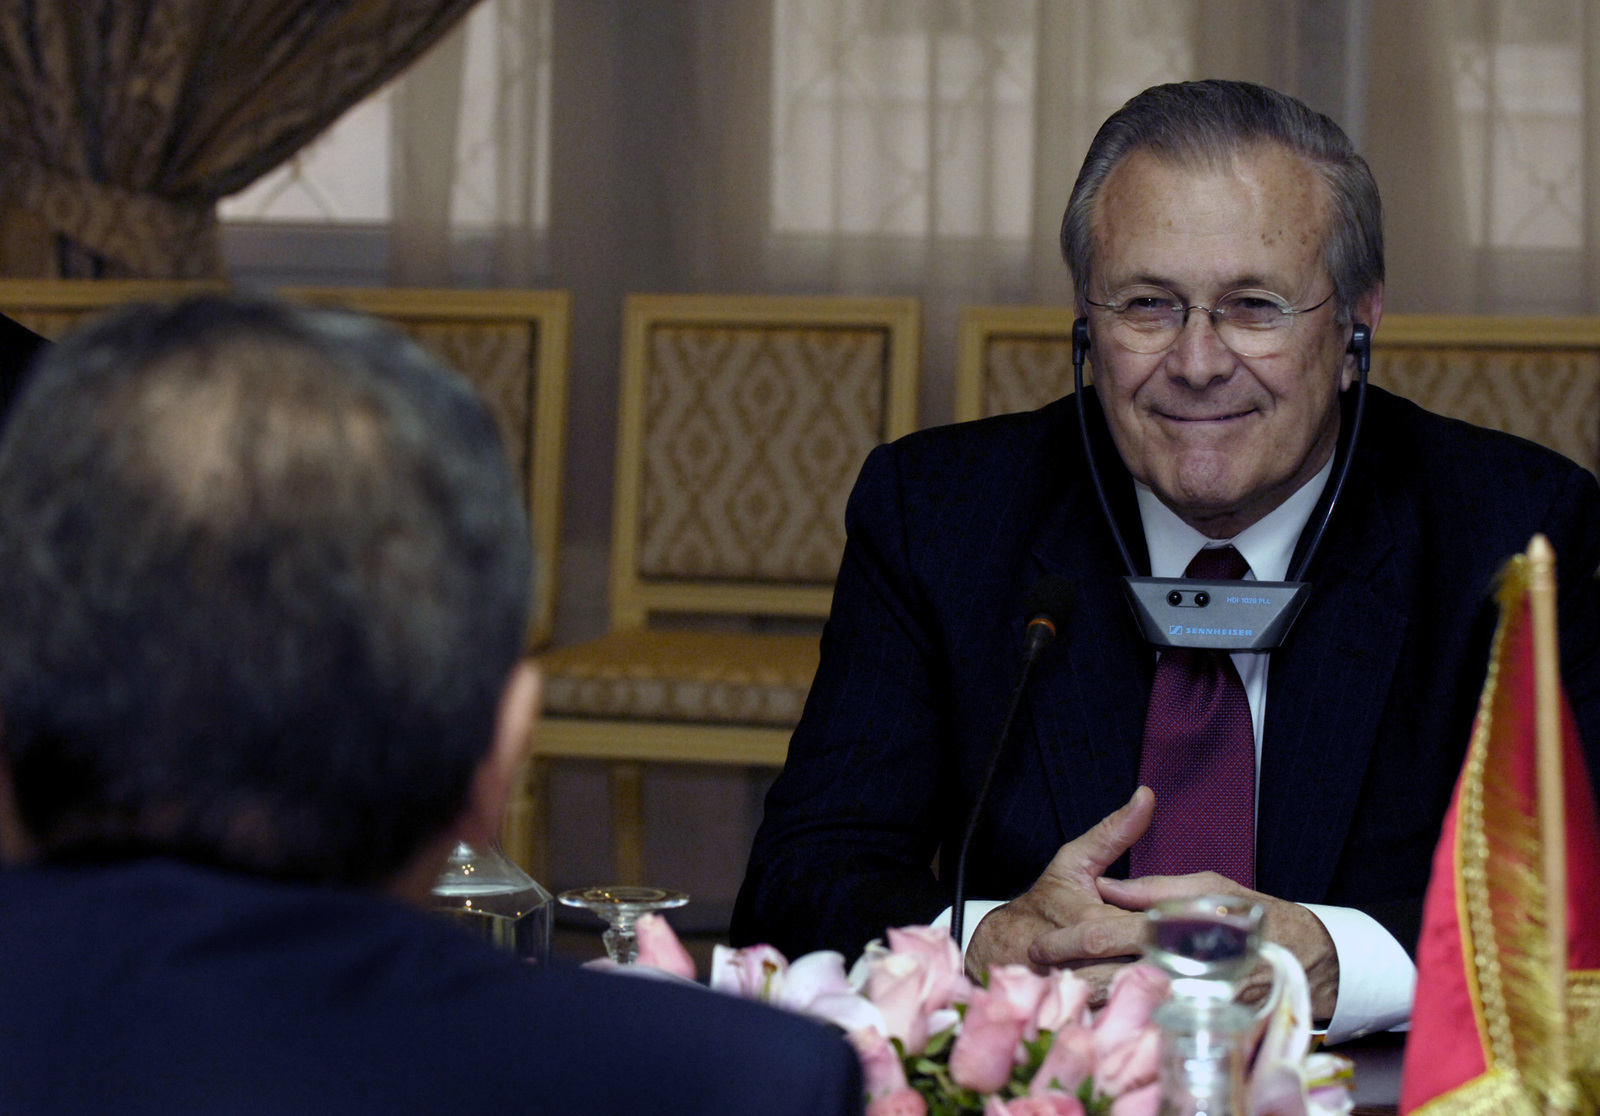 The Honorable Donald H. Rumsfeld, U.S. Secretary of Defense, attends a bilateral talk with Tunisian officials during his visit in Tunis, Tunisia, on Feb 11, 2006. Sec. Rumsfeld is on a tour of numerous North African countries after attending the North Atlantic Treaty Organization (NATO) Defense Minister Meeting in Italy. (DoD photo by PETTY Officer 1ST Class Chad J. McNeeley) (Released)